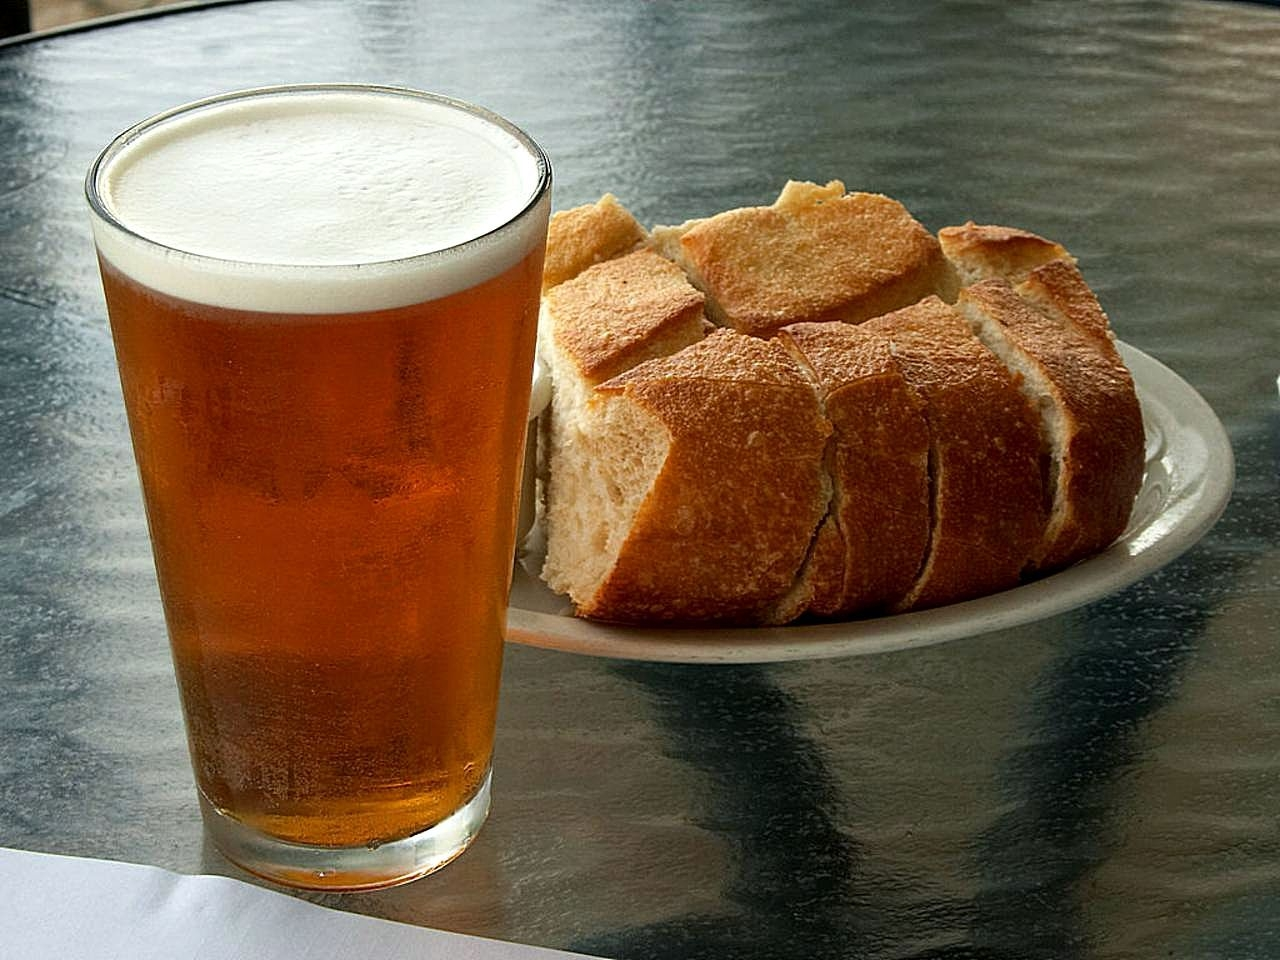 Ale and bread on a table